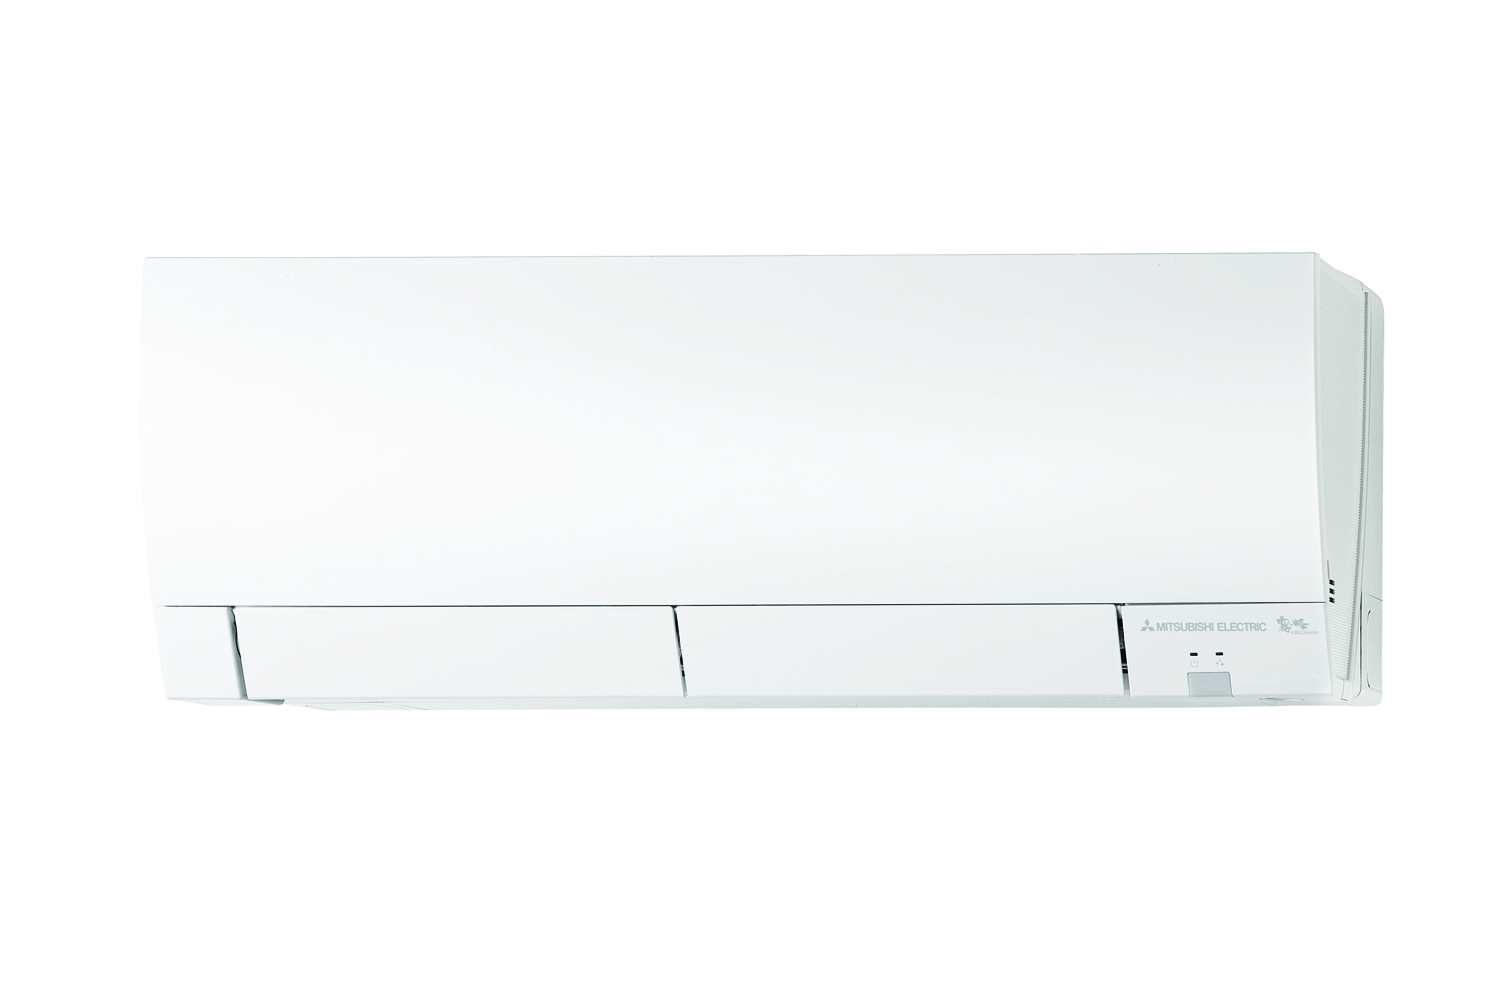 MSZ-FH 50 VE VEHZ Mitsubishi Electric